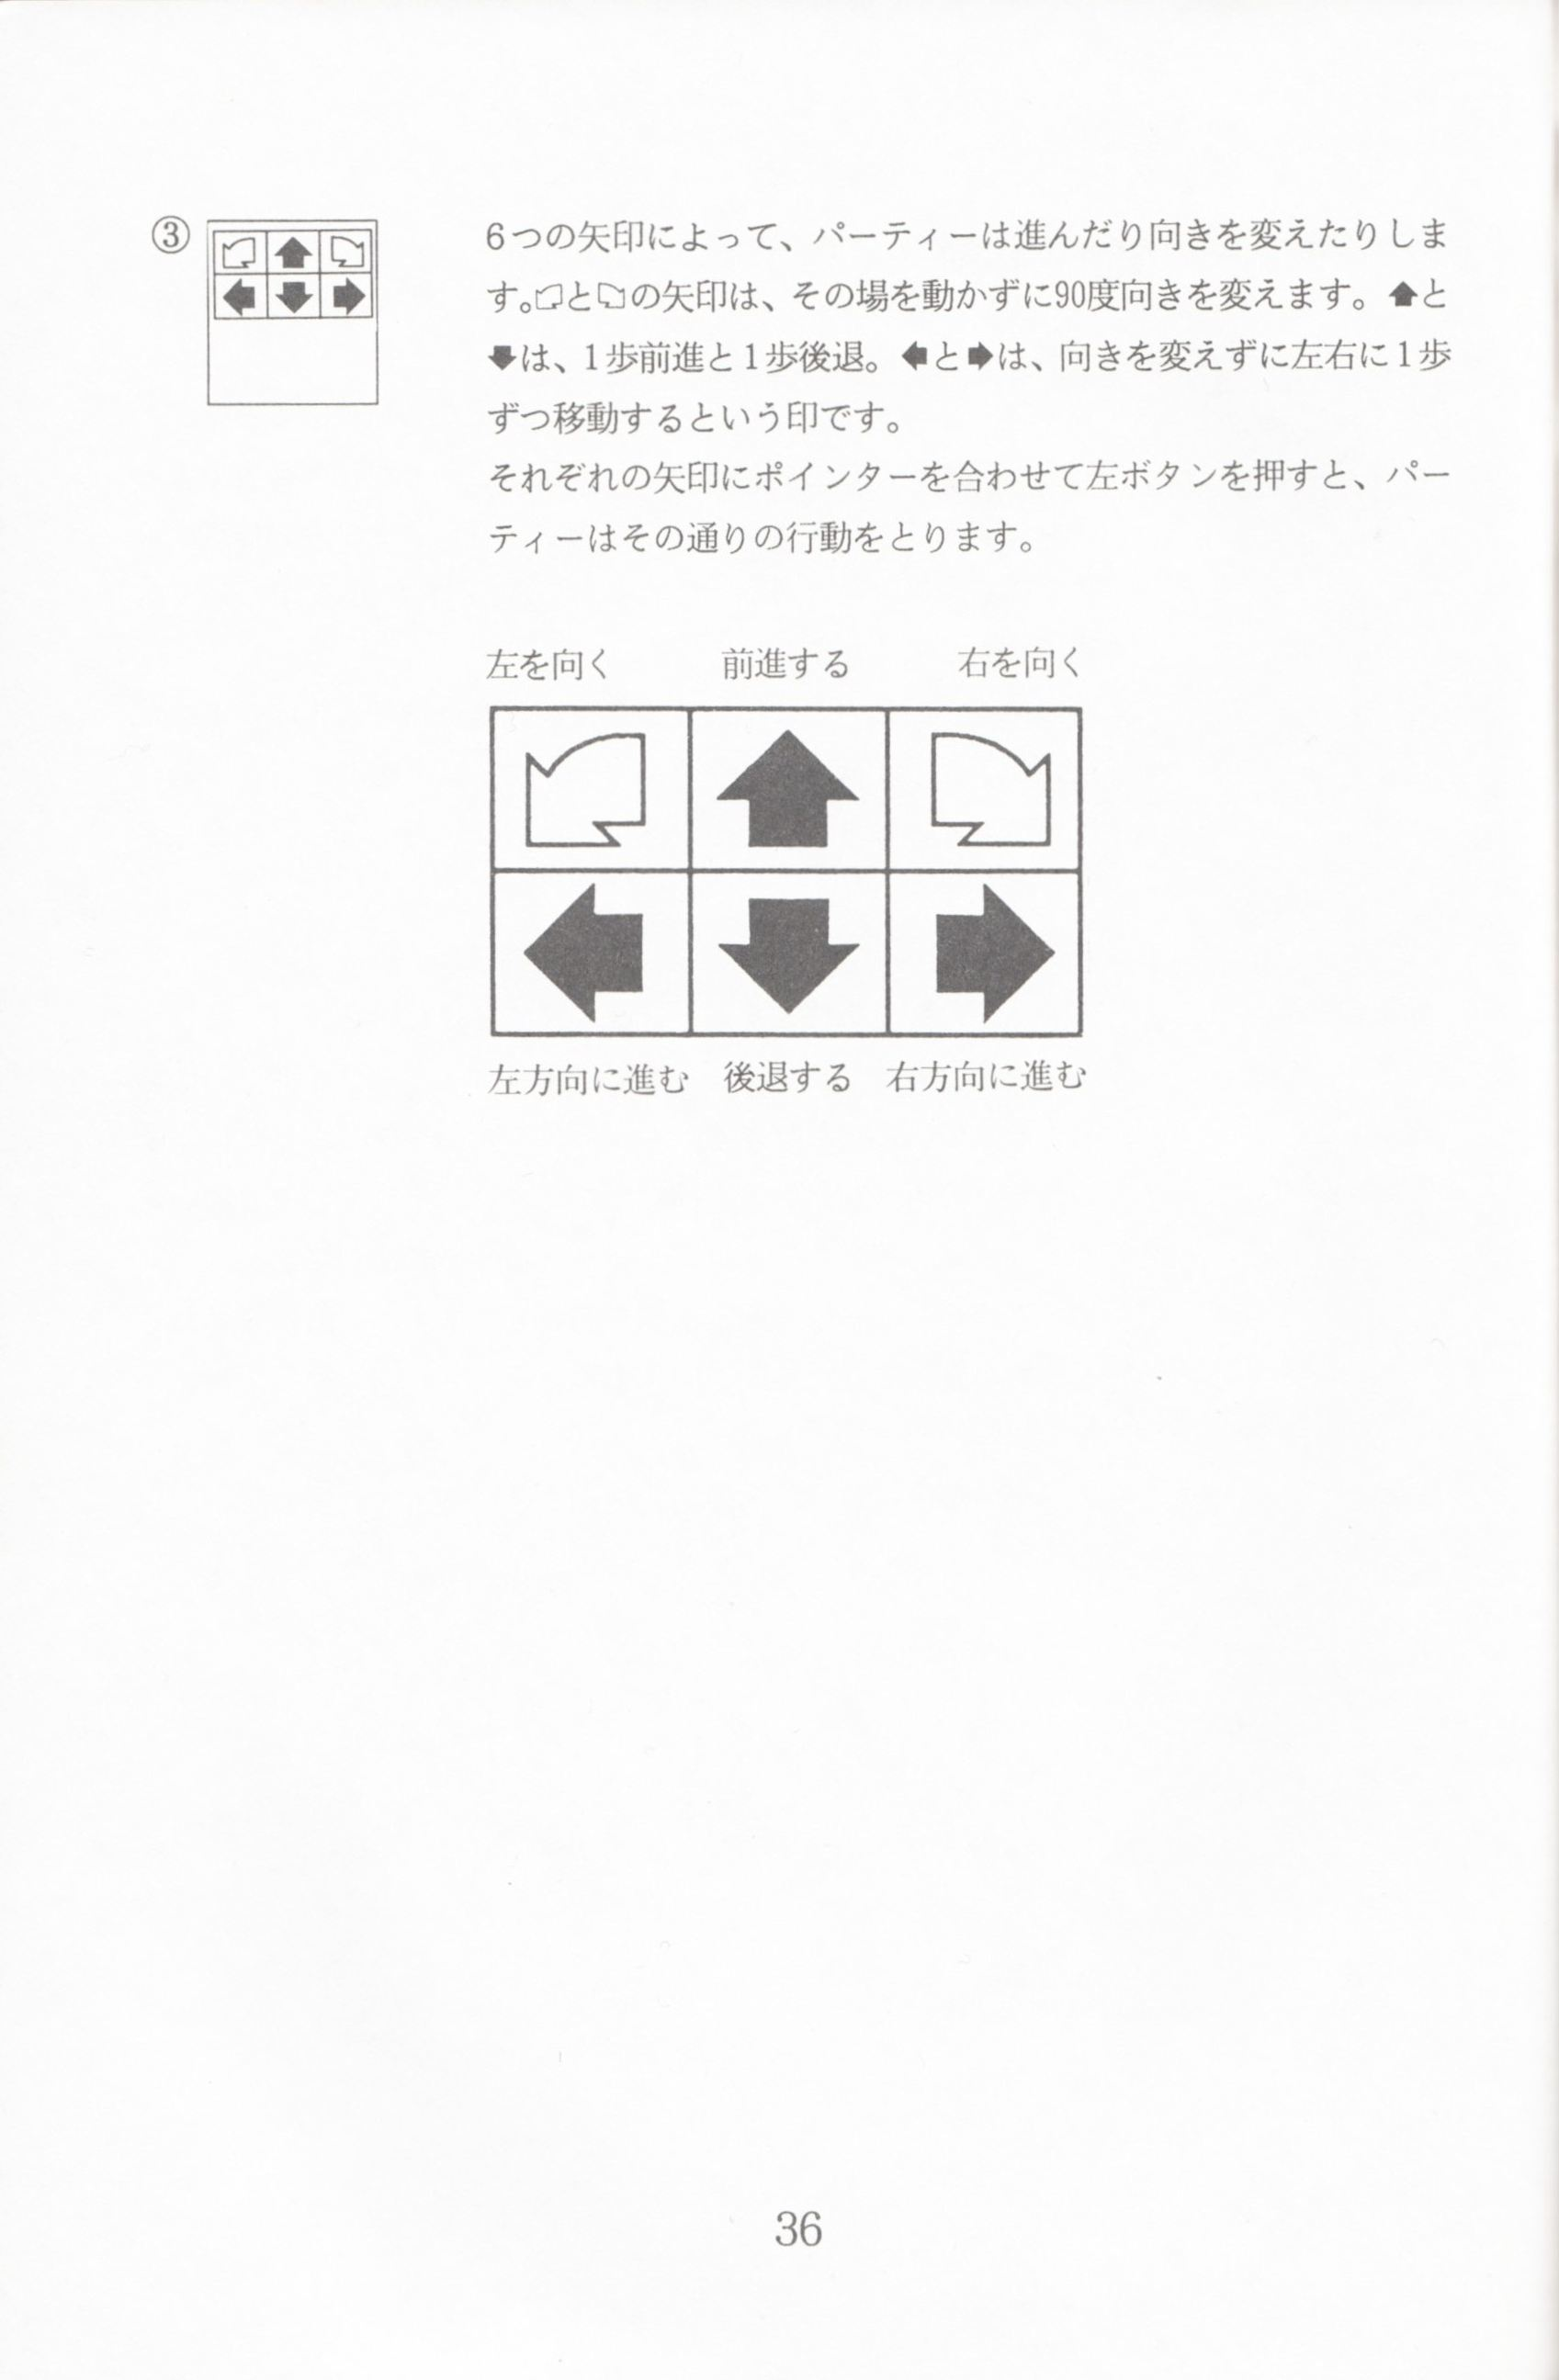 Game - Dungeon Master - JP - PC-9801 - 5.25-inch - Manual - Page 038 - Scan